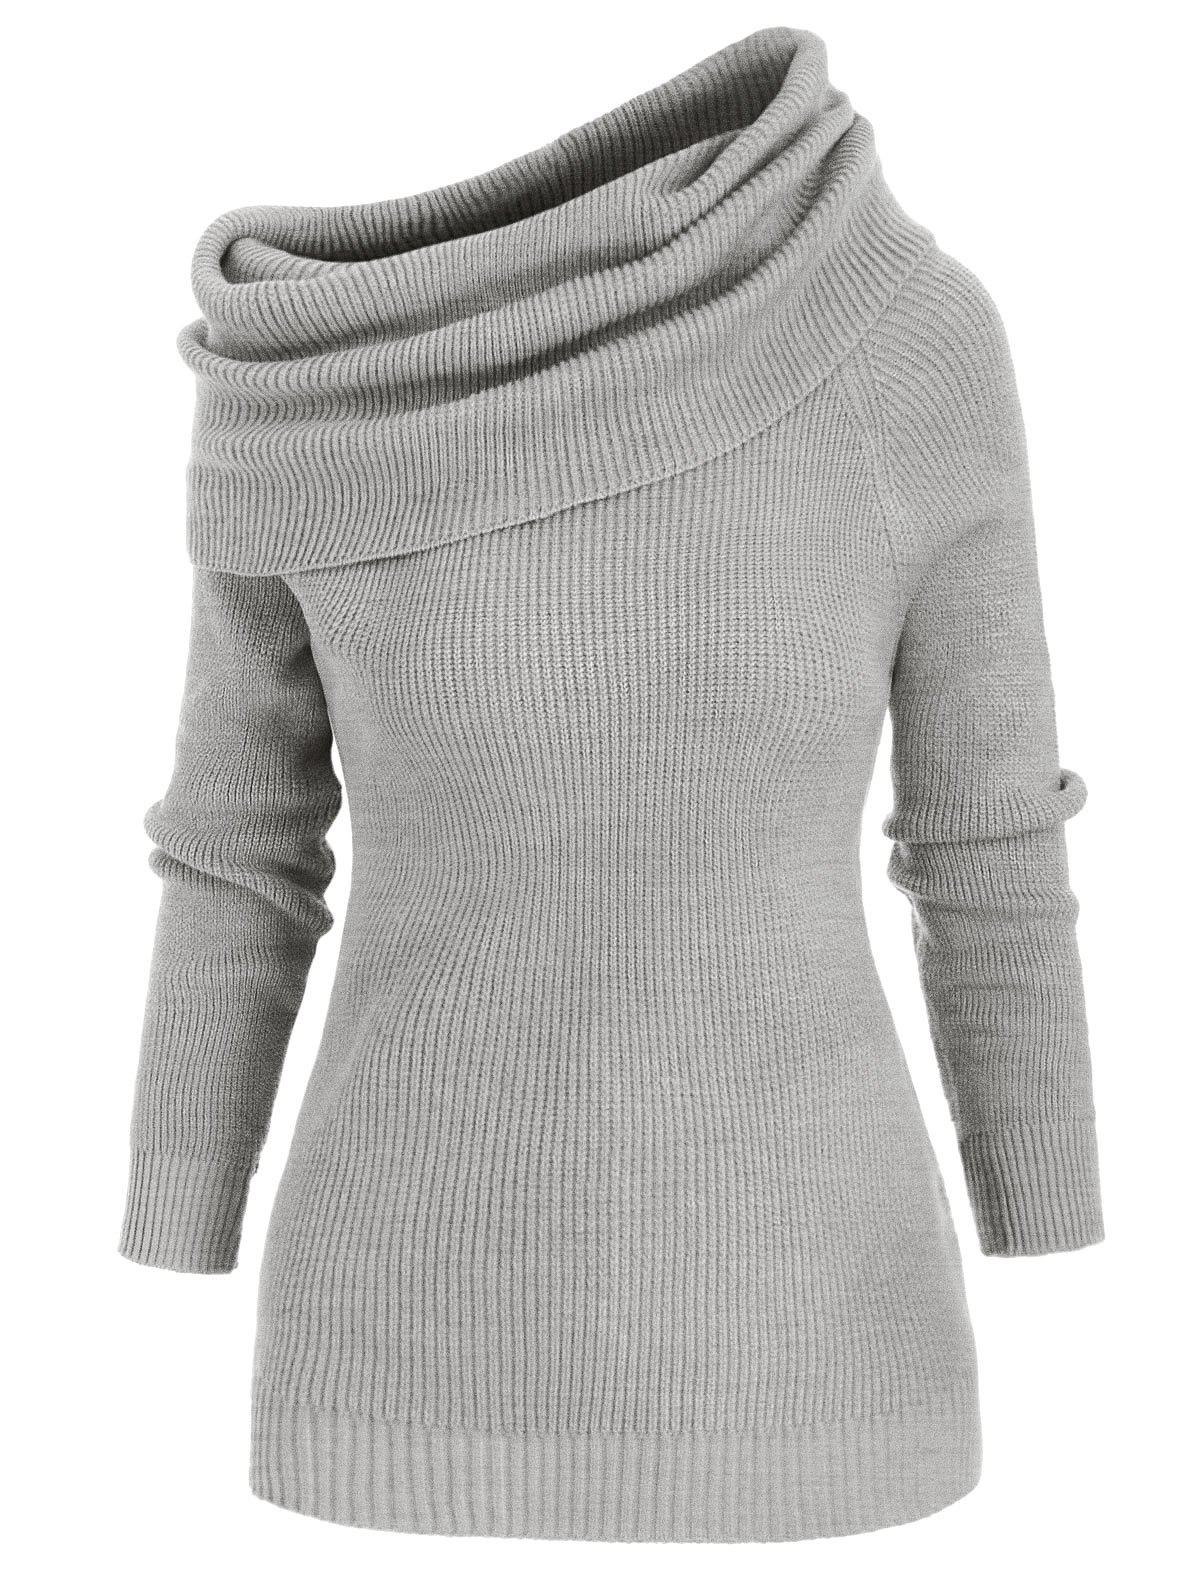 Convertible Foldover Plain Jumper Sweater - GRAY XL